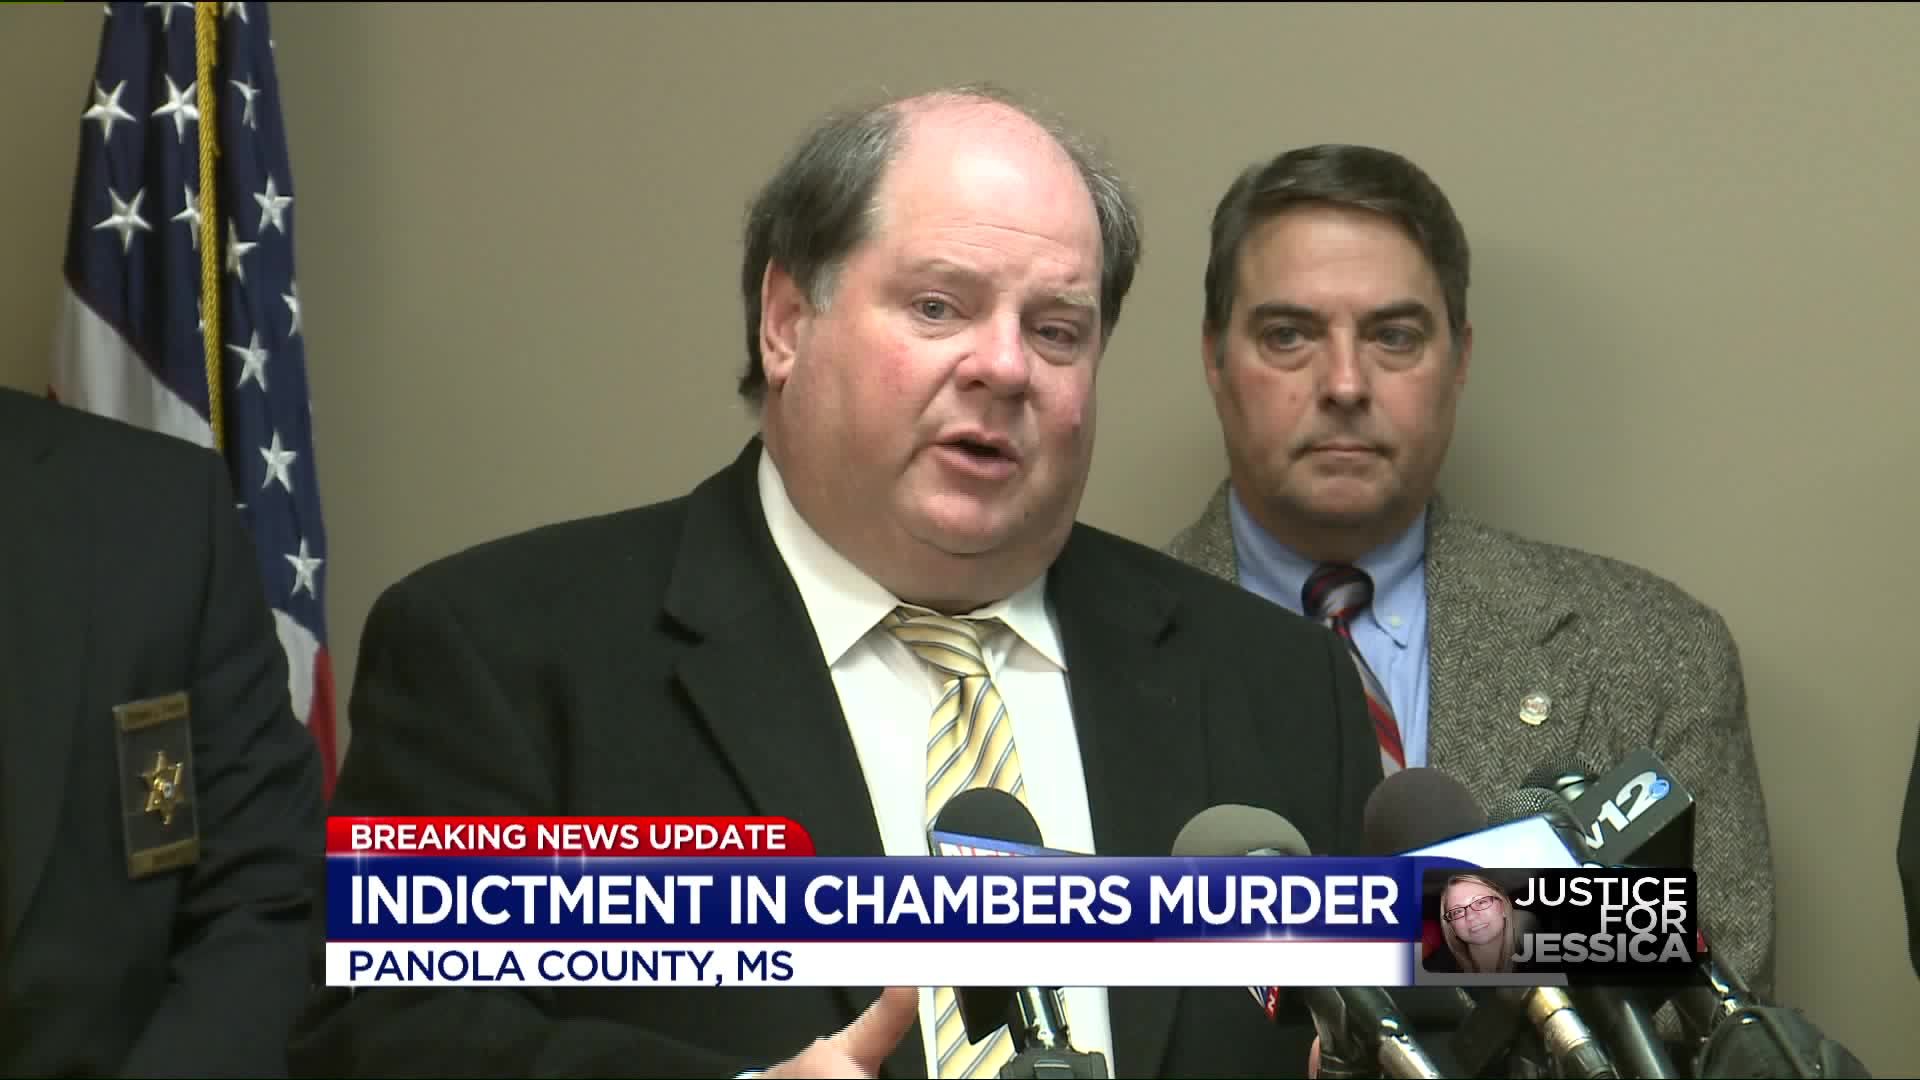 Jessica Chambers' Family Reacts To Indictment In Her Murder Case